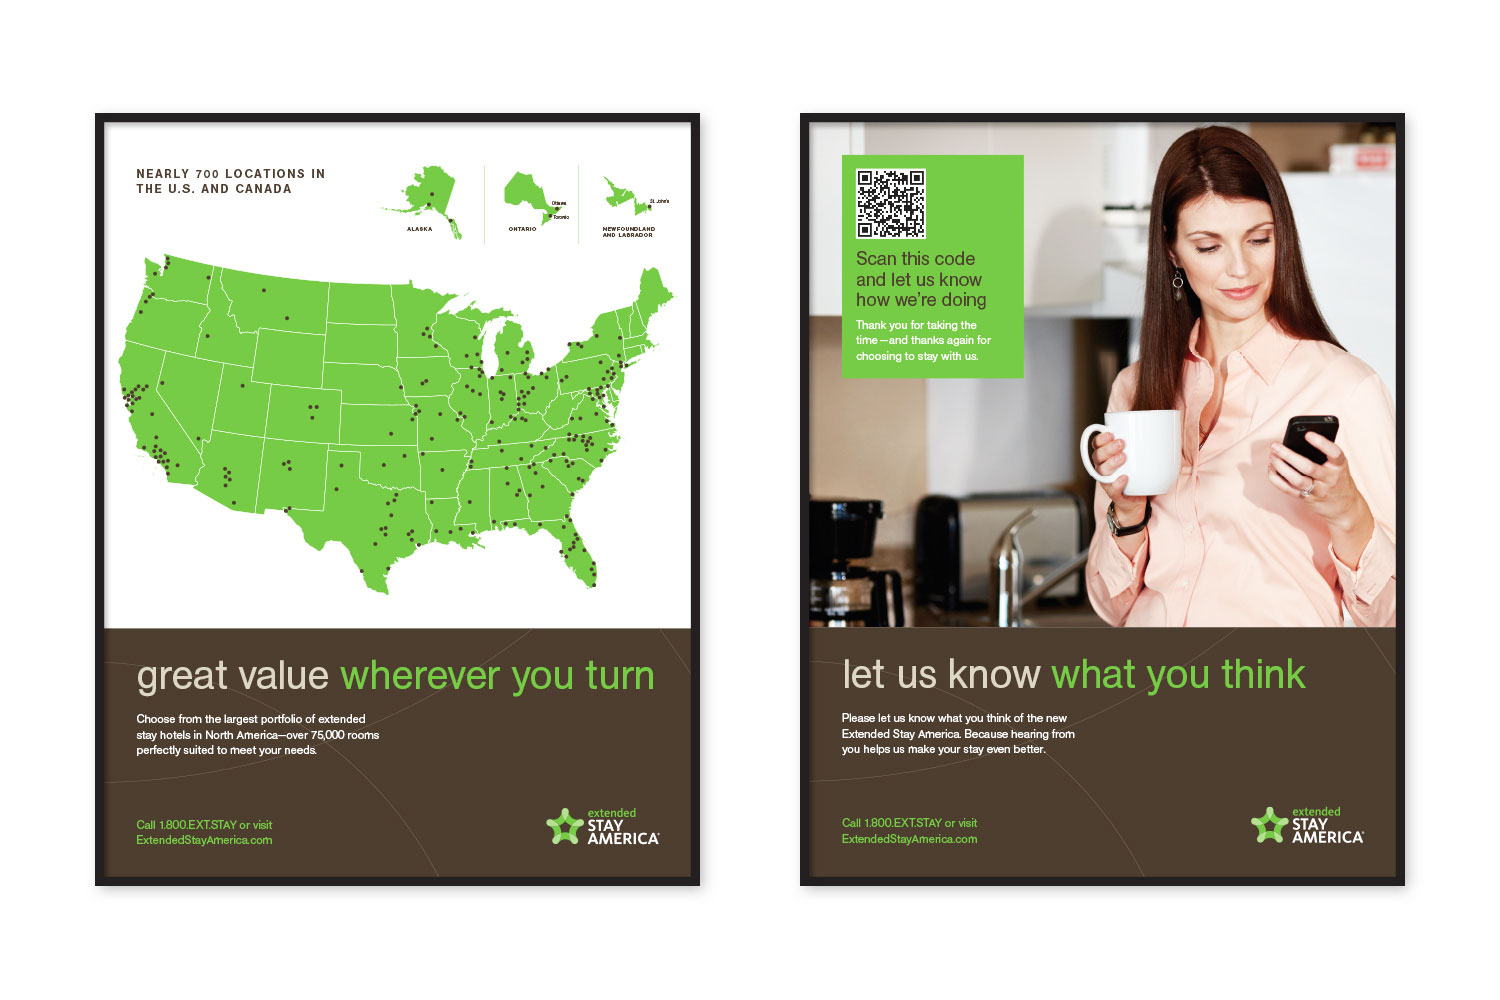 Extended Stay America posters